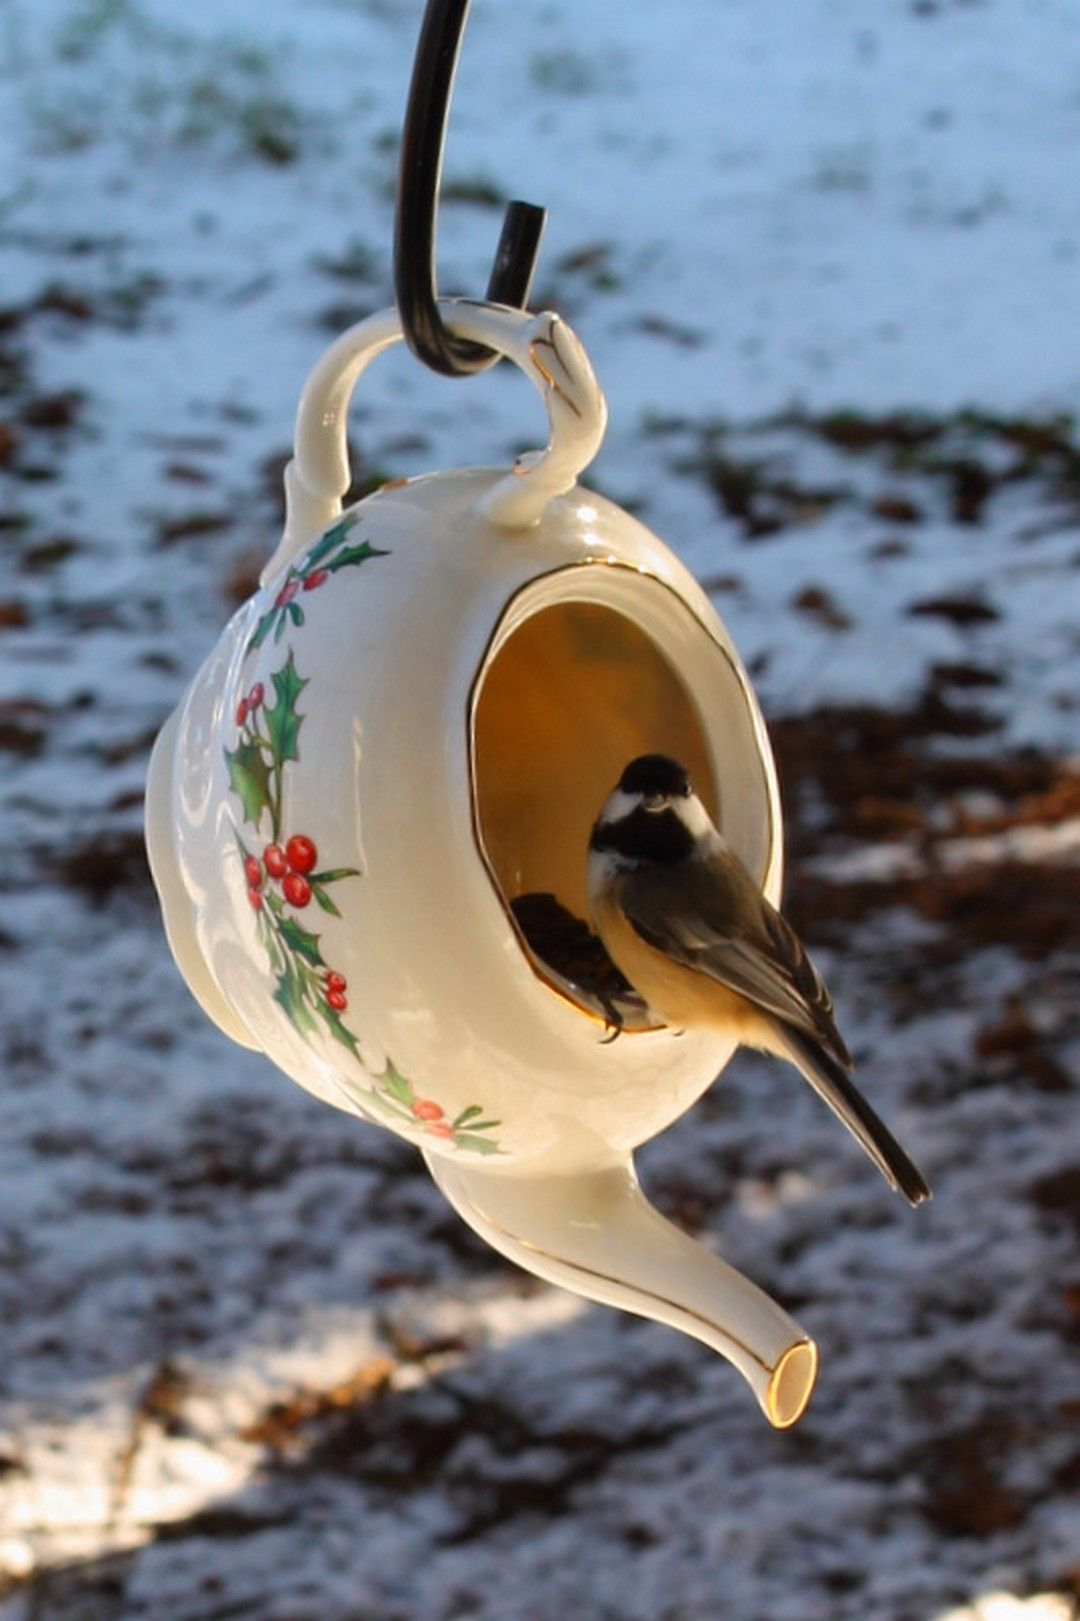 18 Awesome House Exterior Design Ideas: 18 Awesome DIY Teapot Birdhouse Decoration Ideas